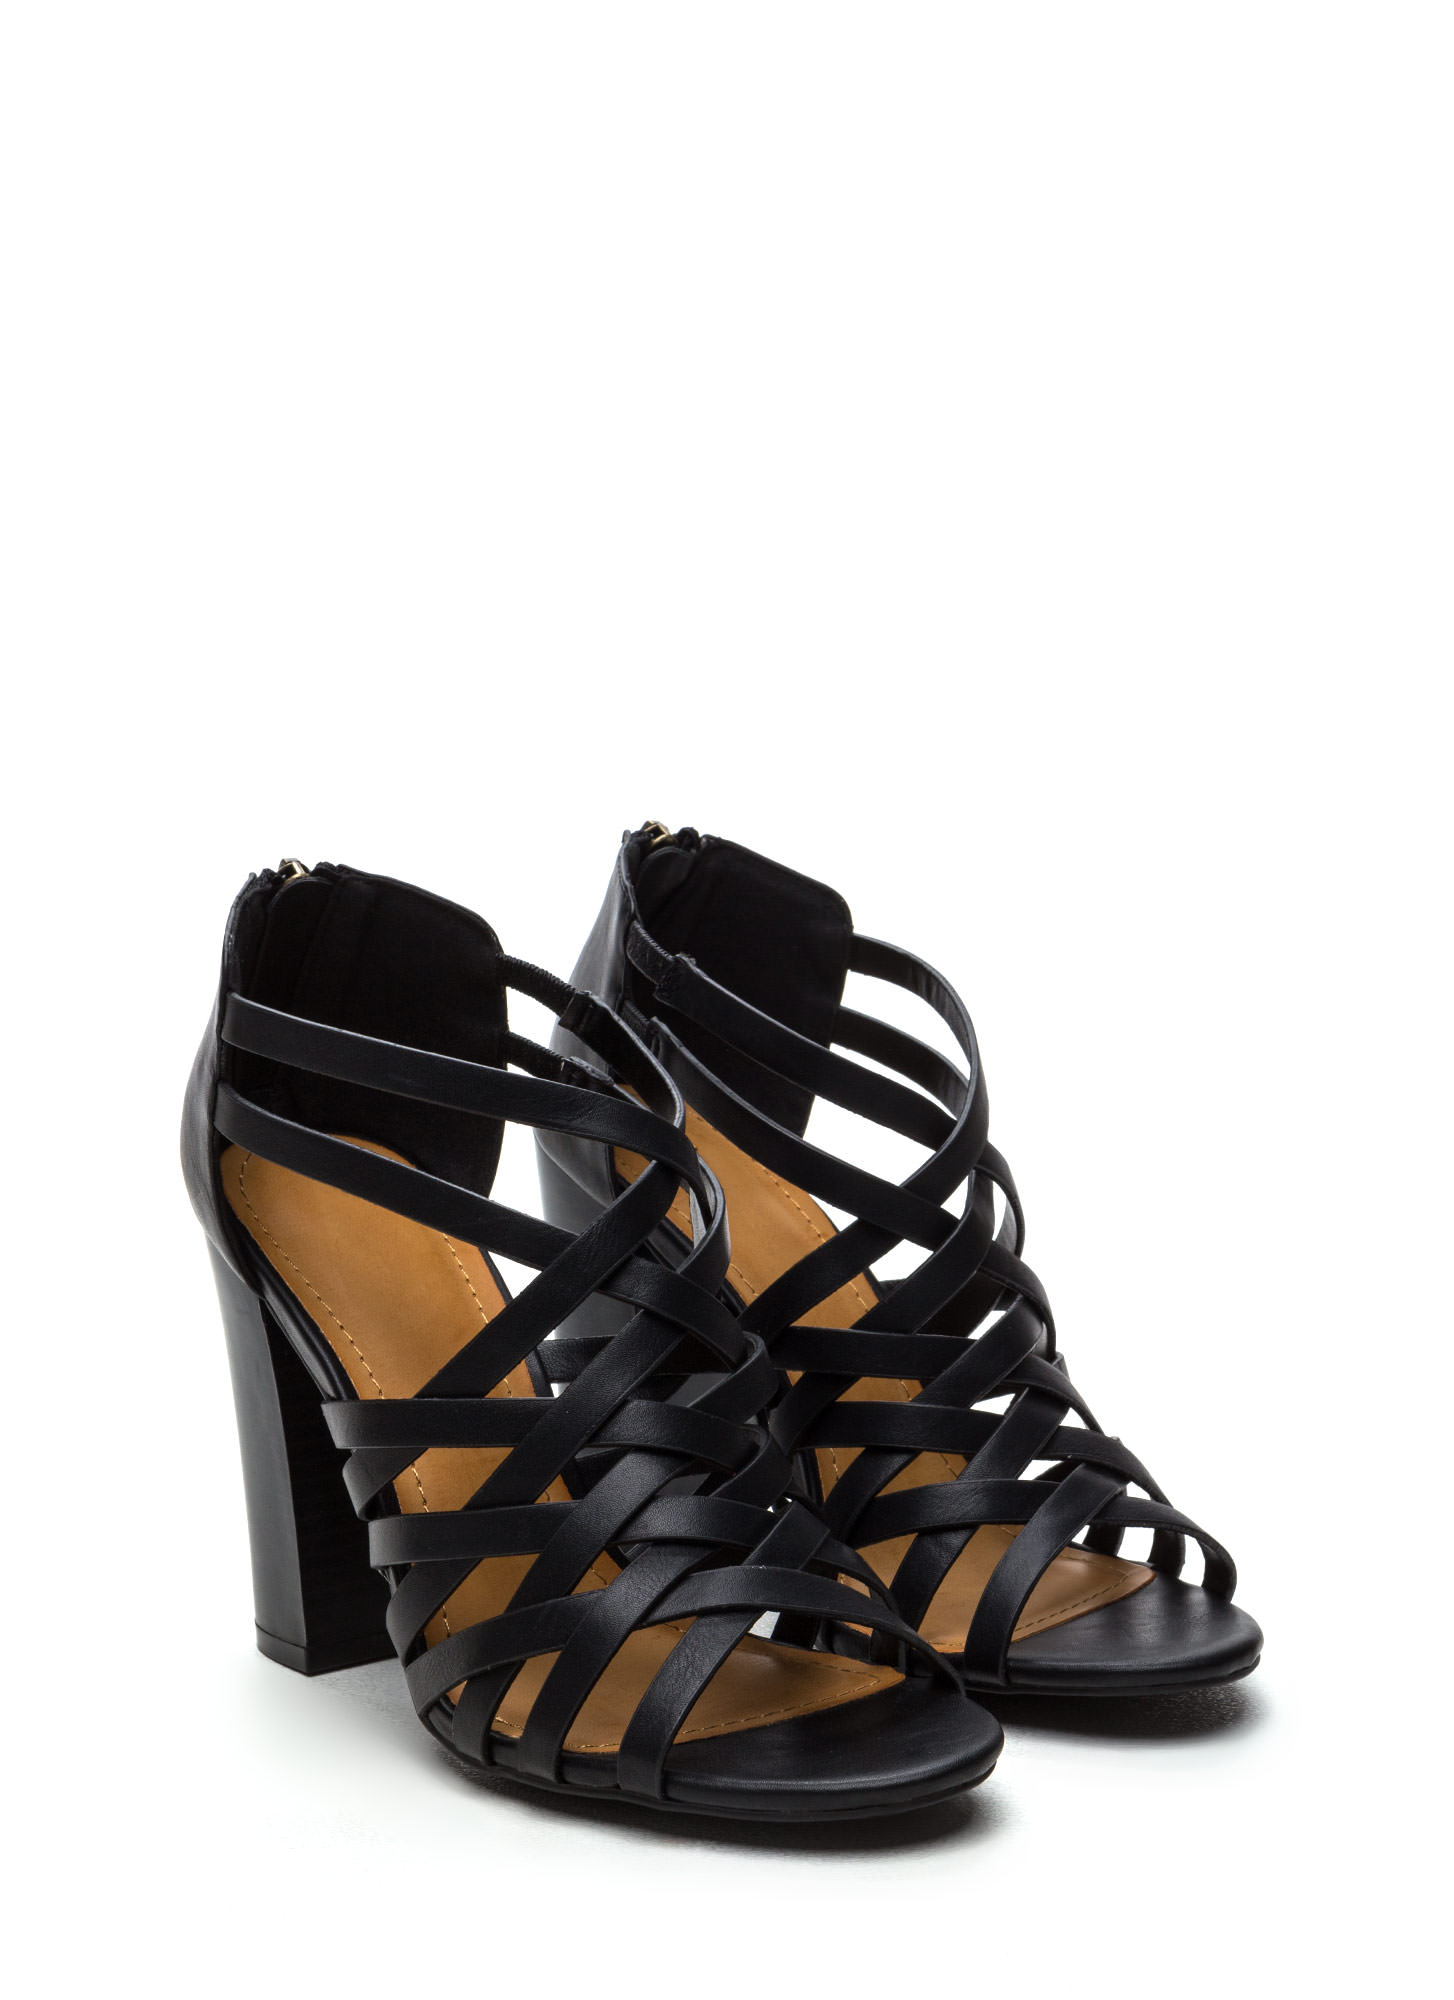 Pull Together Woven Faux Leather Heels BLACK